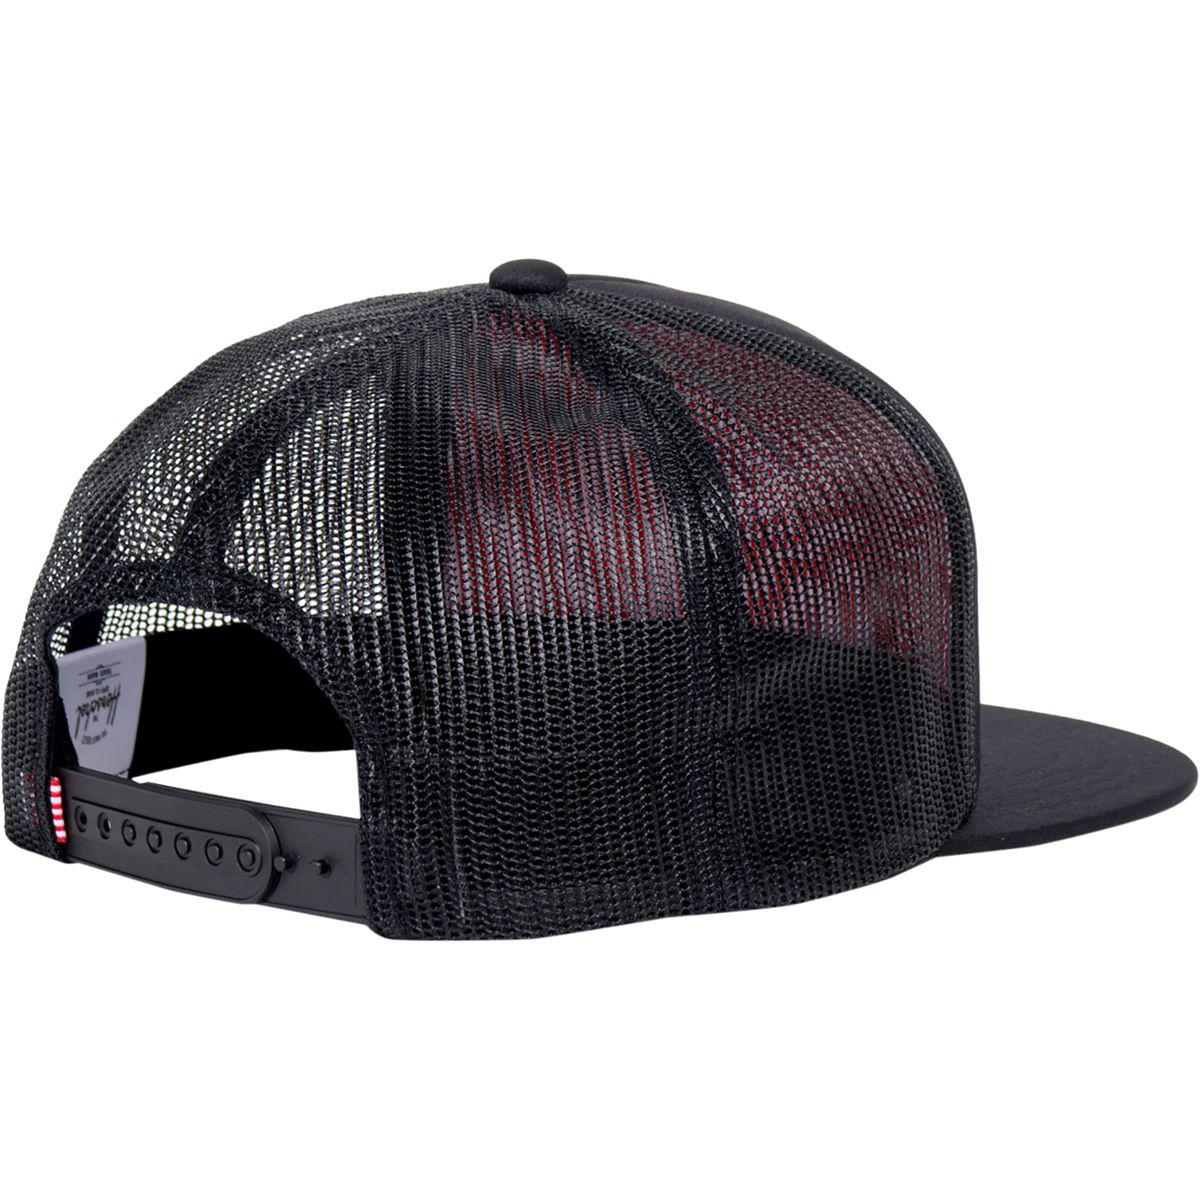 Herschel Supply Co. - Black Whaler Mesh Trucker Hat for Men - Lyst. View  fullscreen 1c5115902d5e